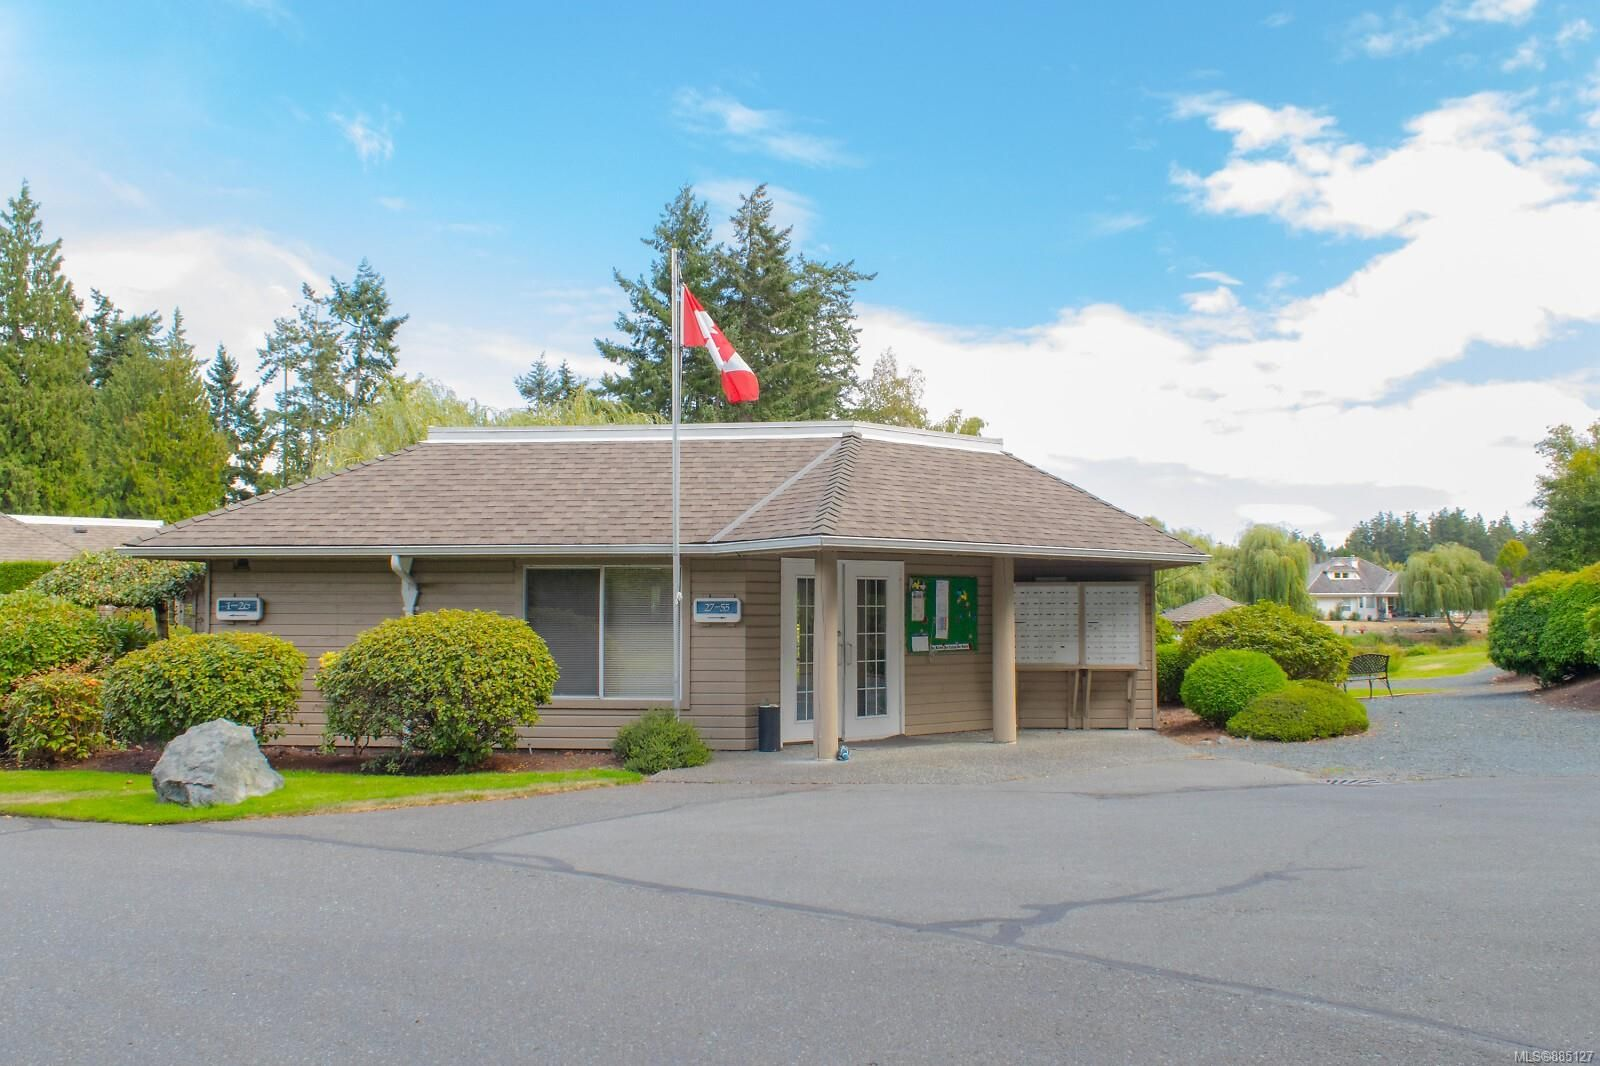 Photo 56: Photos: 26 529 Johnstone Rd in : PQ French Creek Row/Townhouse for sale (Parksville/Qualicum)  : MLS®# 885127